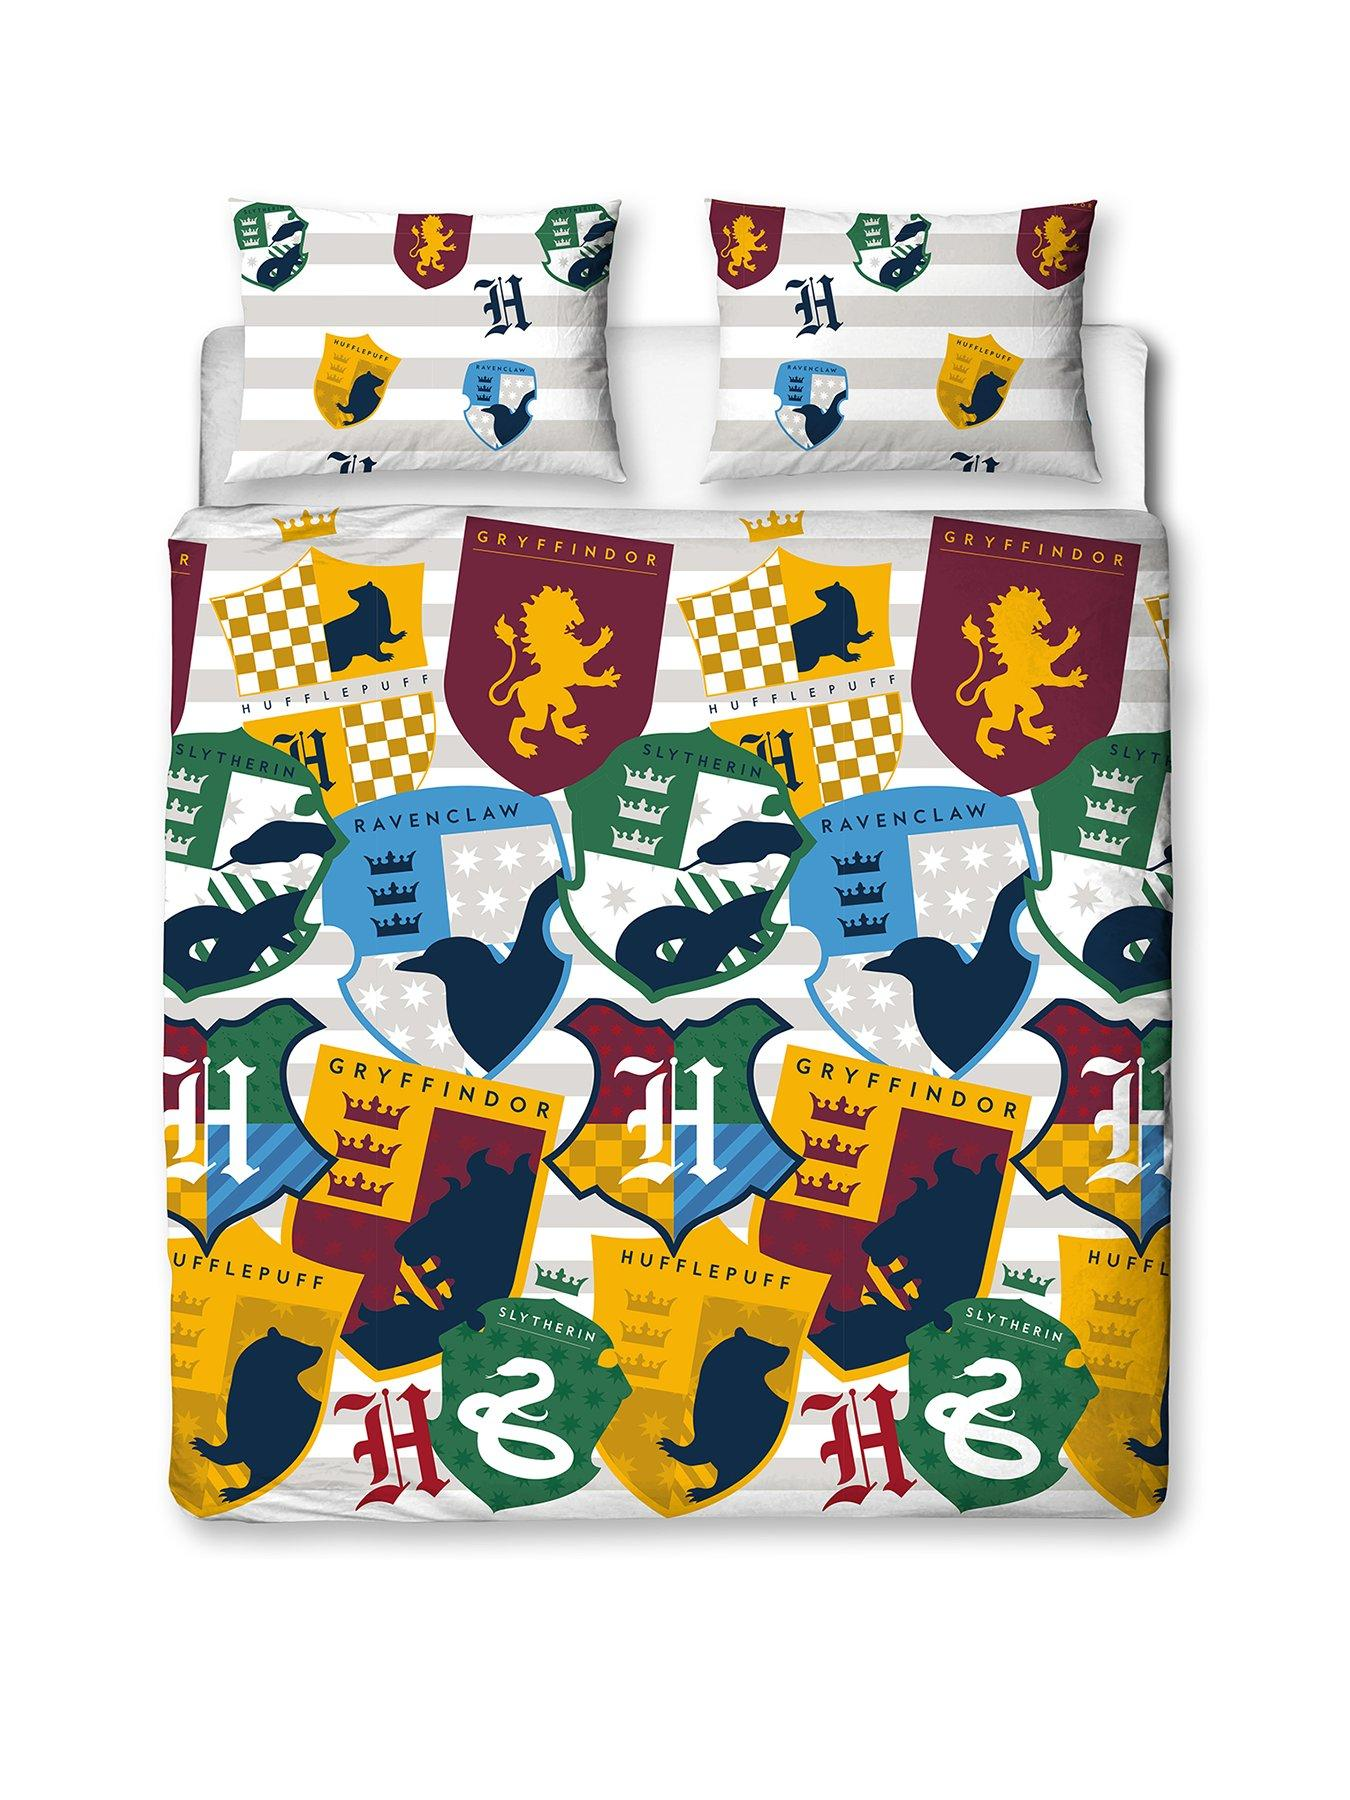 Details about  /Womens Official Harry Potter Sorted Gryffindor Sorting Hat Pyjamas Sizes 12-18